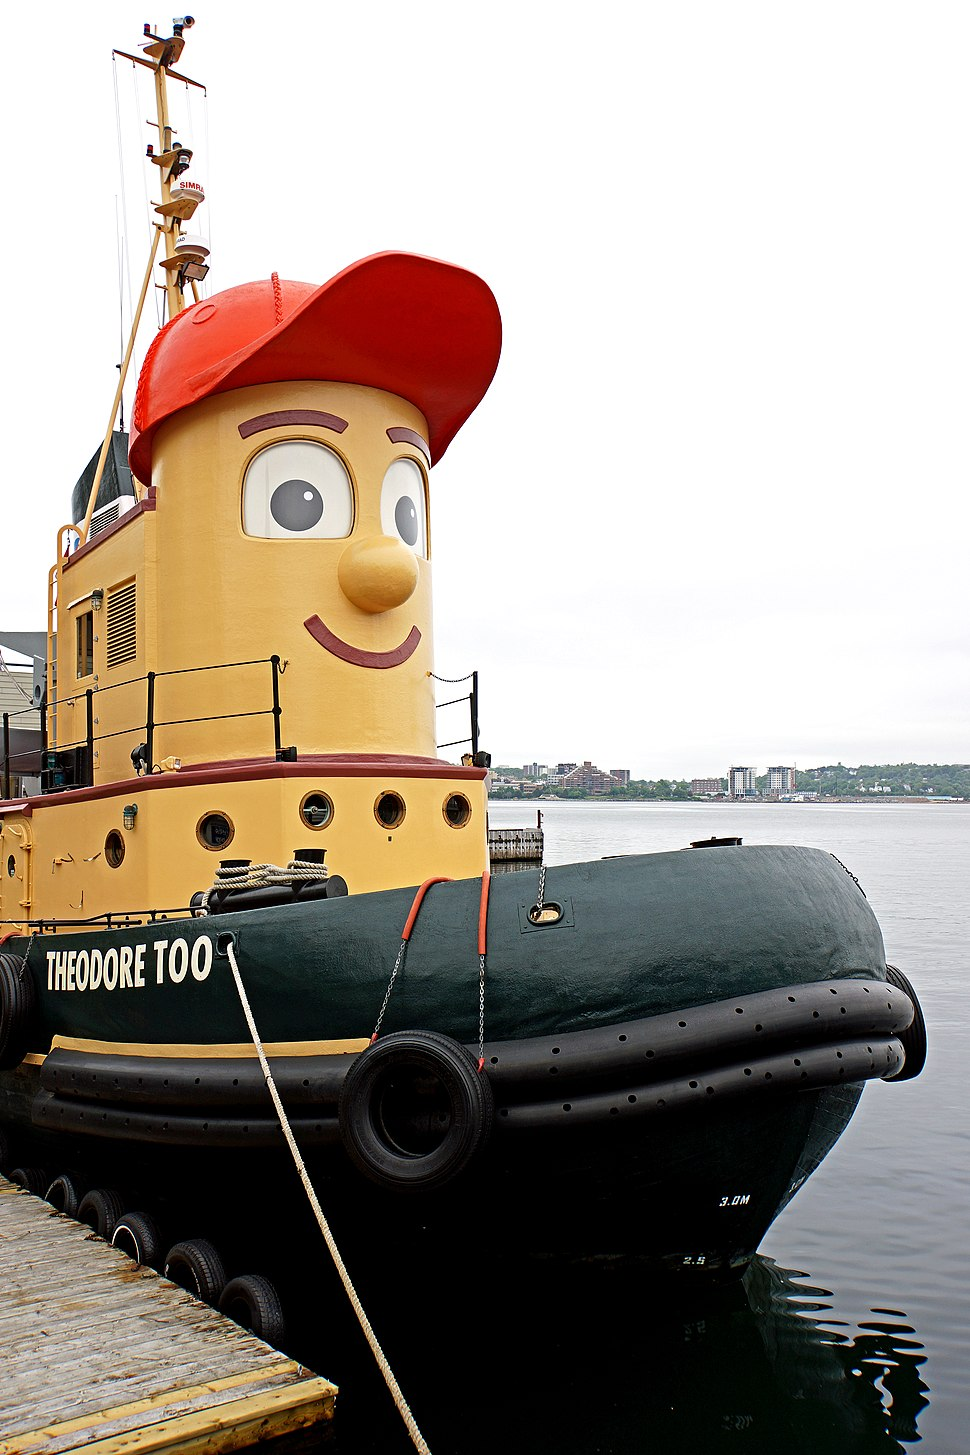 Theodore Tugboat at Murphys cable wharf